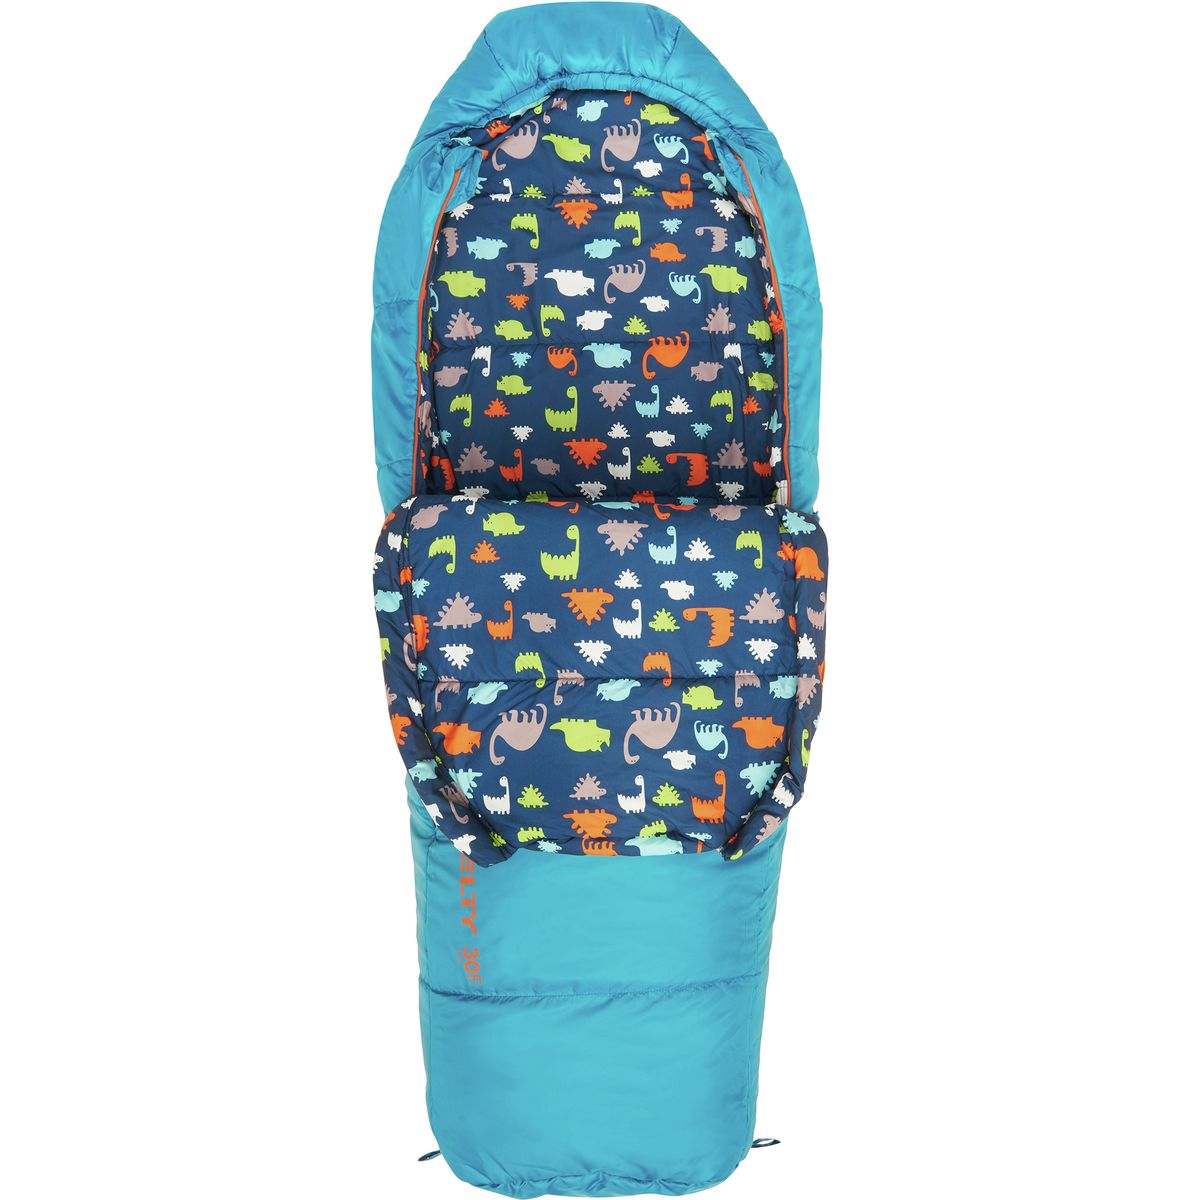 Kelty Woobie 30 Sleeping Bag: 30 Degree Synthetic - Kids' Mosaic Blue, Short/Right Zip